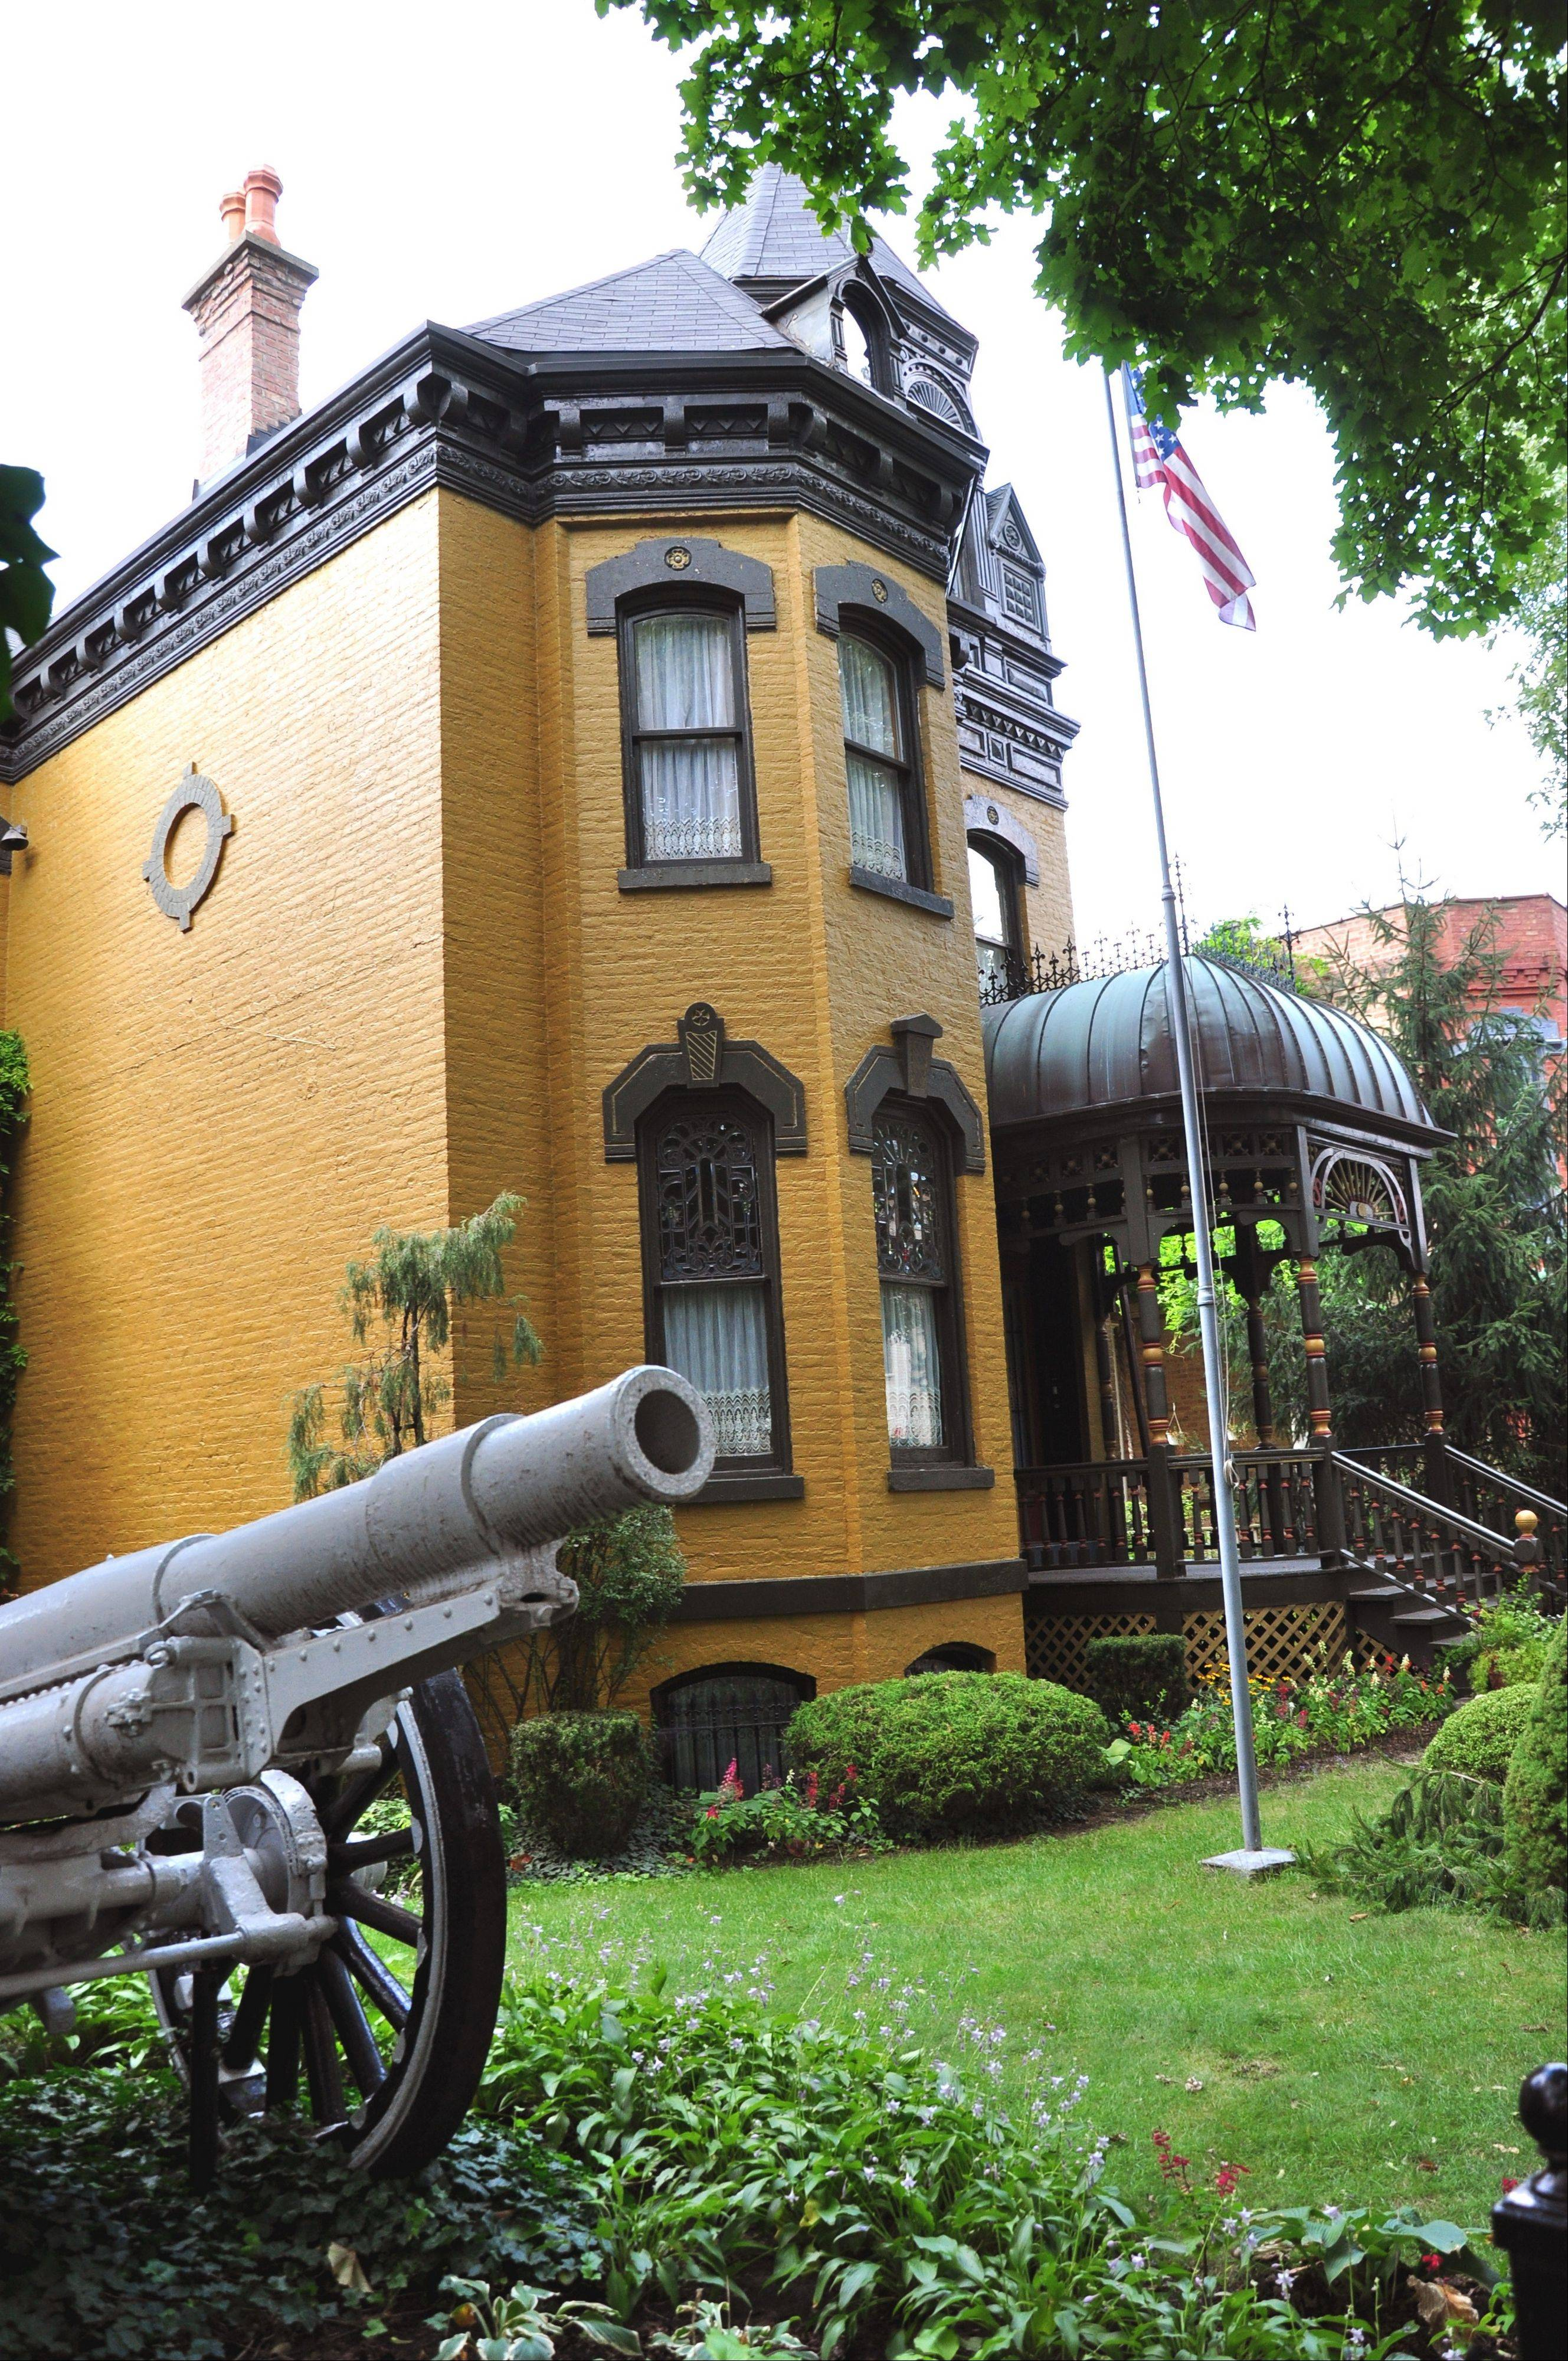 An 1877 Wicker Park mansion was an American Legion hall at one time and still has a1902 cannon on its side lawn.